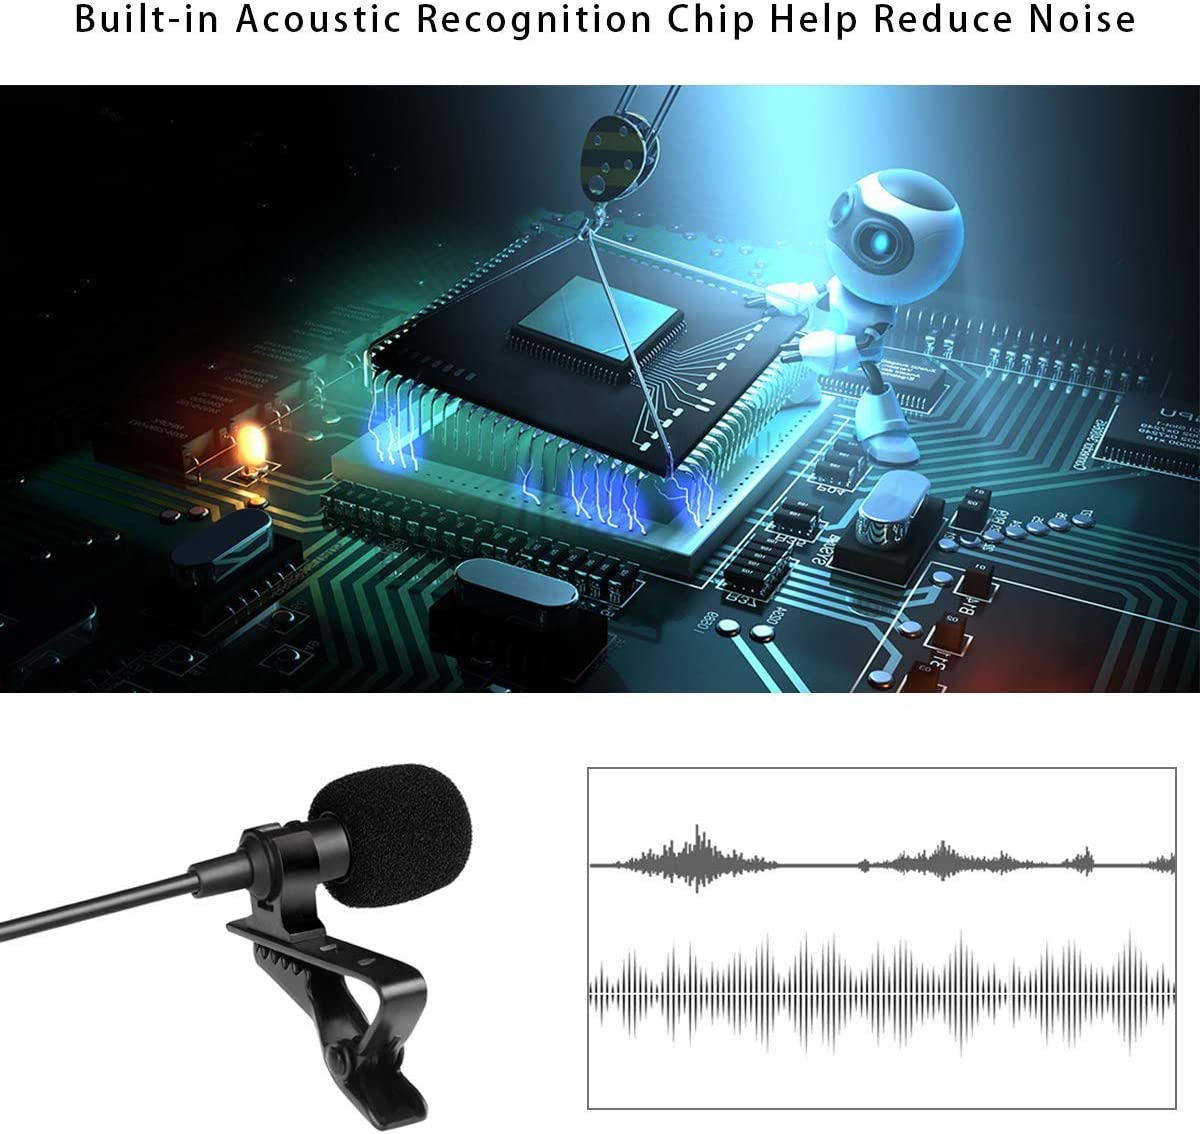 1.5m Gepege Microphone Professional for iPhone Grade Lavalier Lapel Omnidirectional Phone Audio Video Recording Lavalier Condenser Microphone